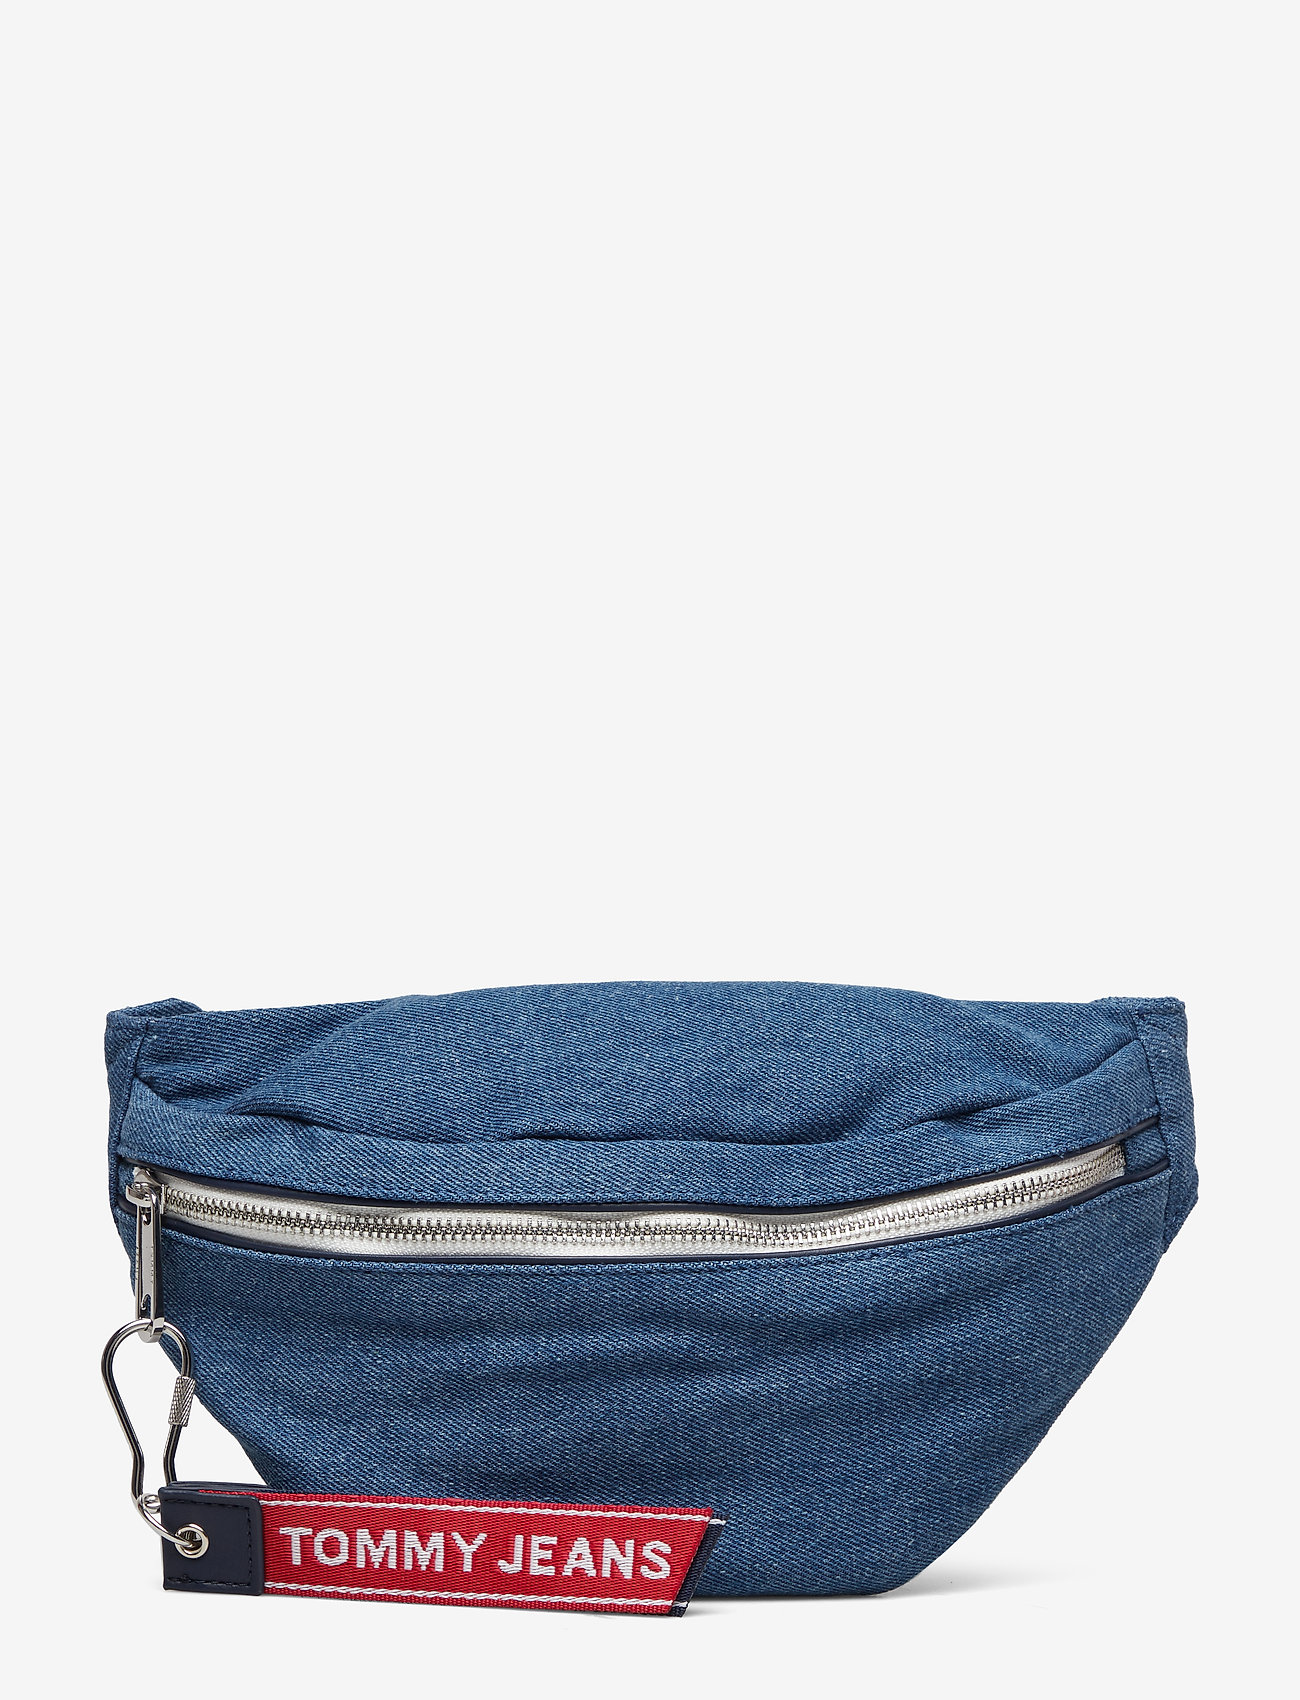 tommy jeans bumbag